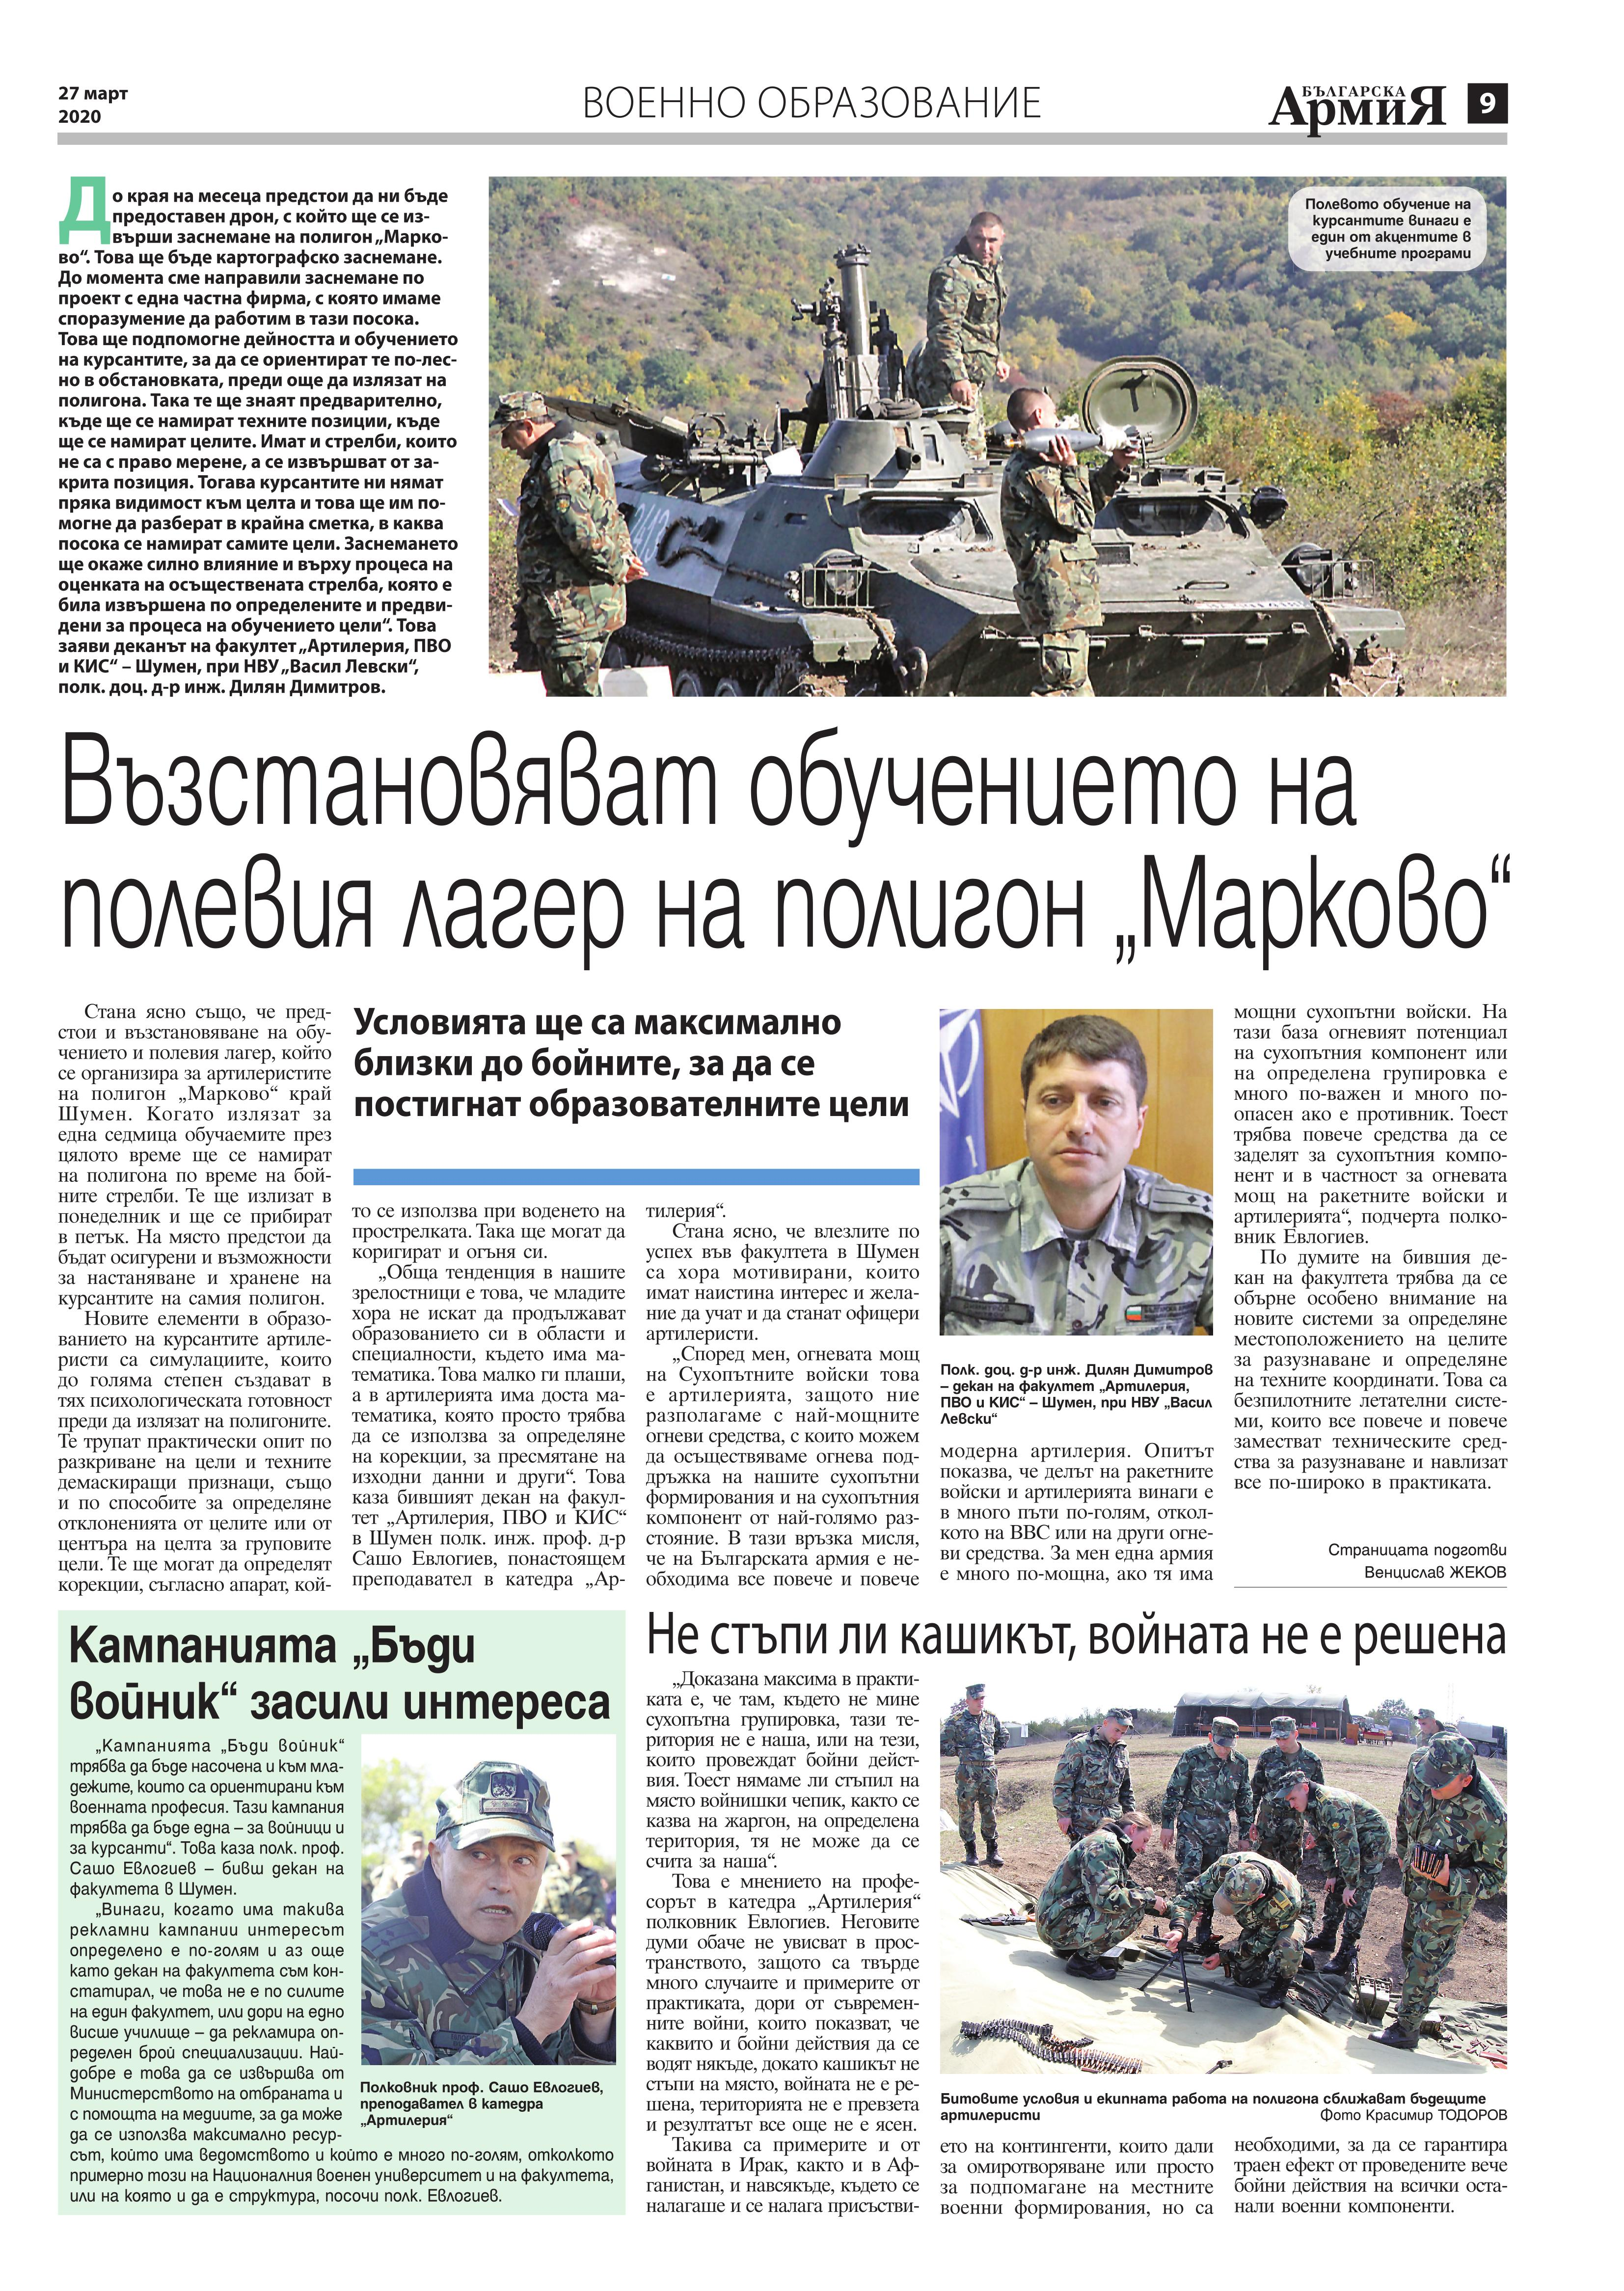 https://armymedia.bg/wp-content/uploads/2015/06/09.page1_-130.jpg